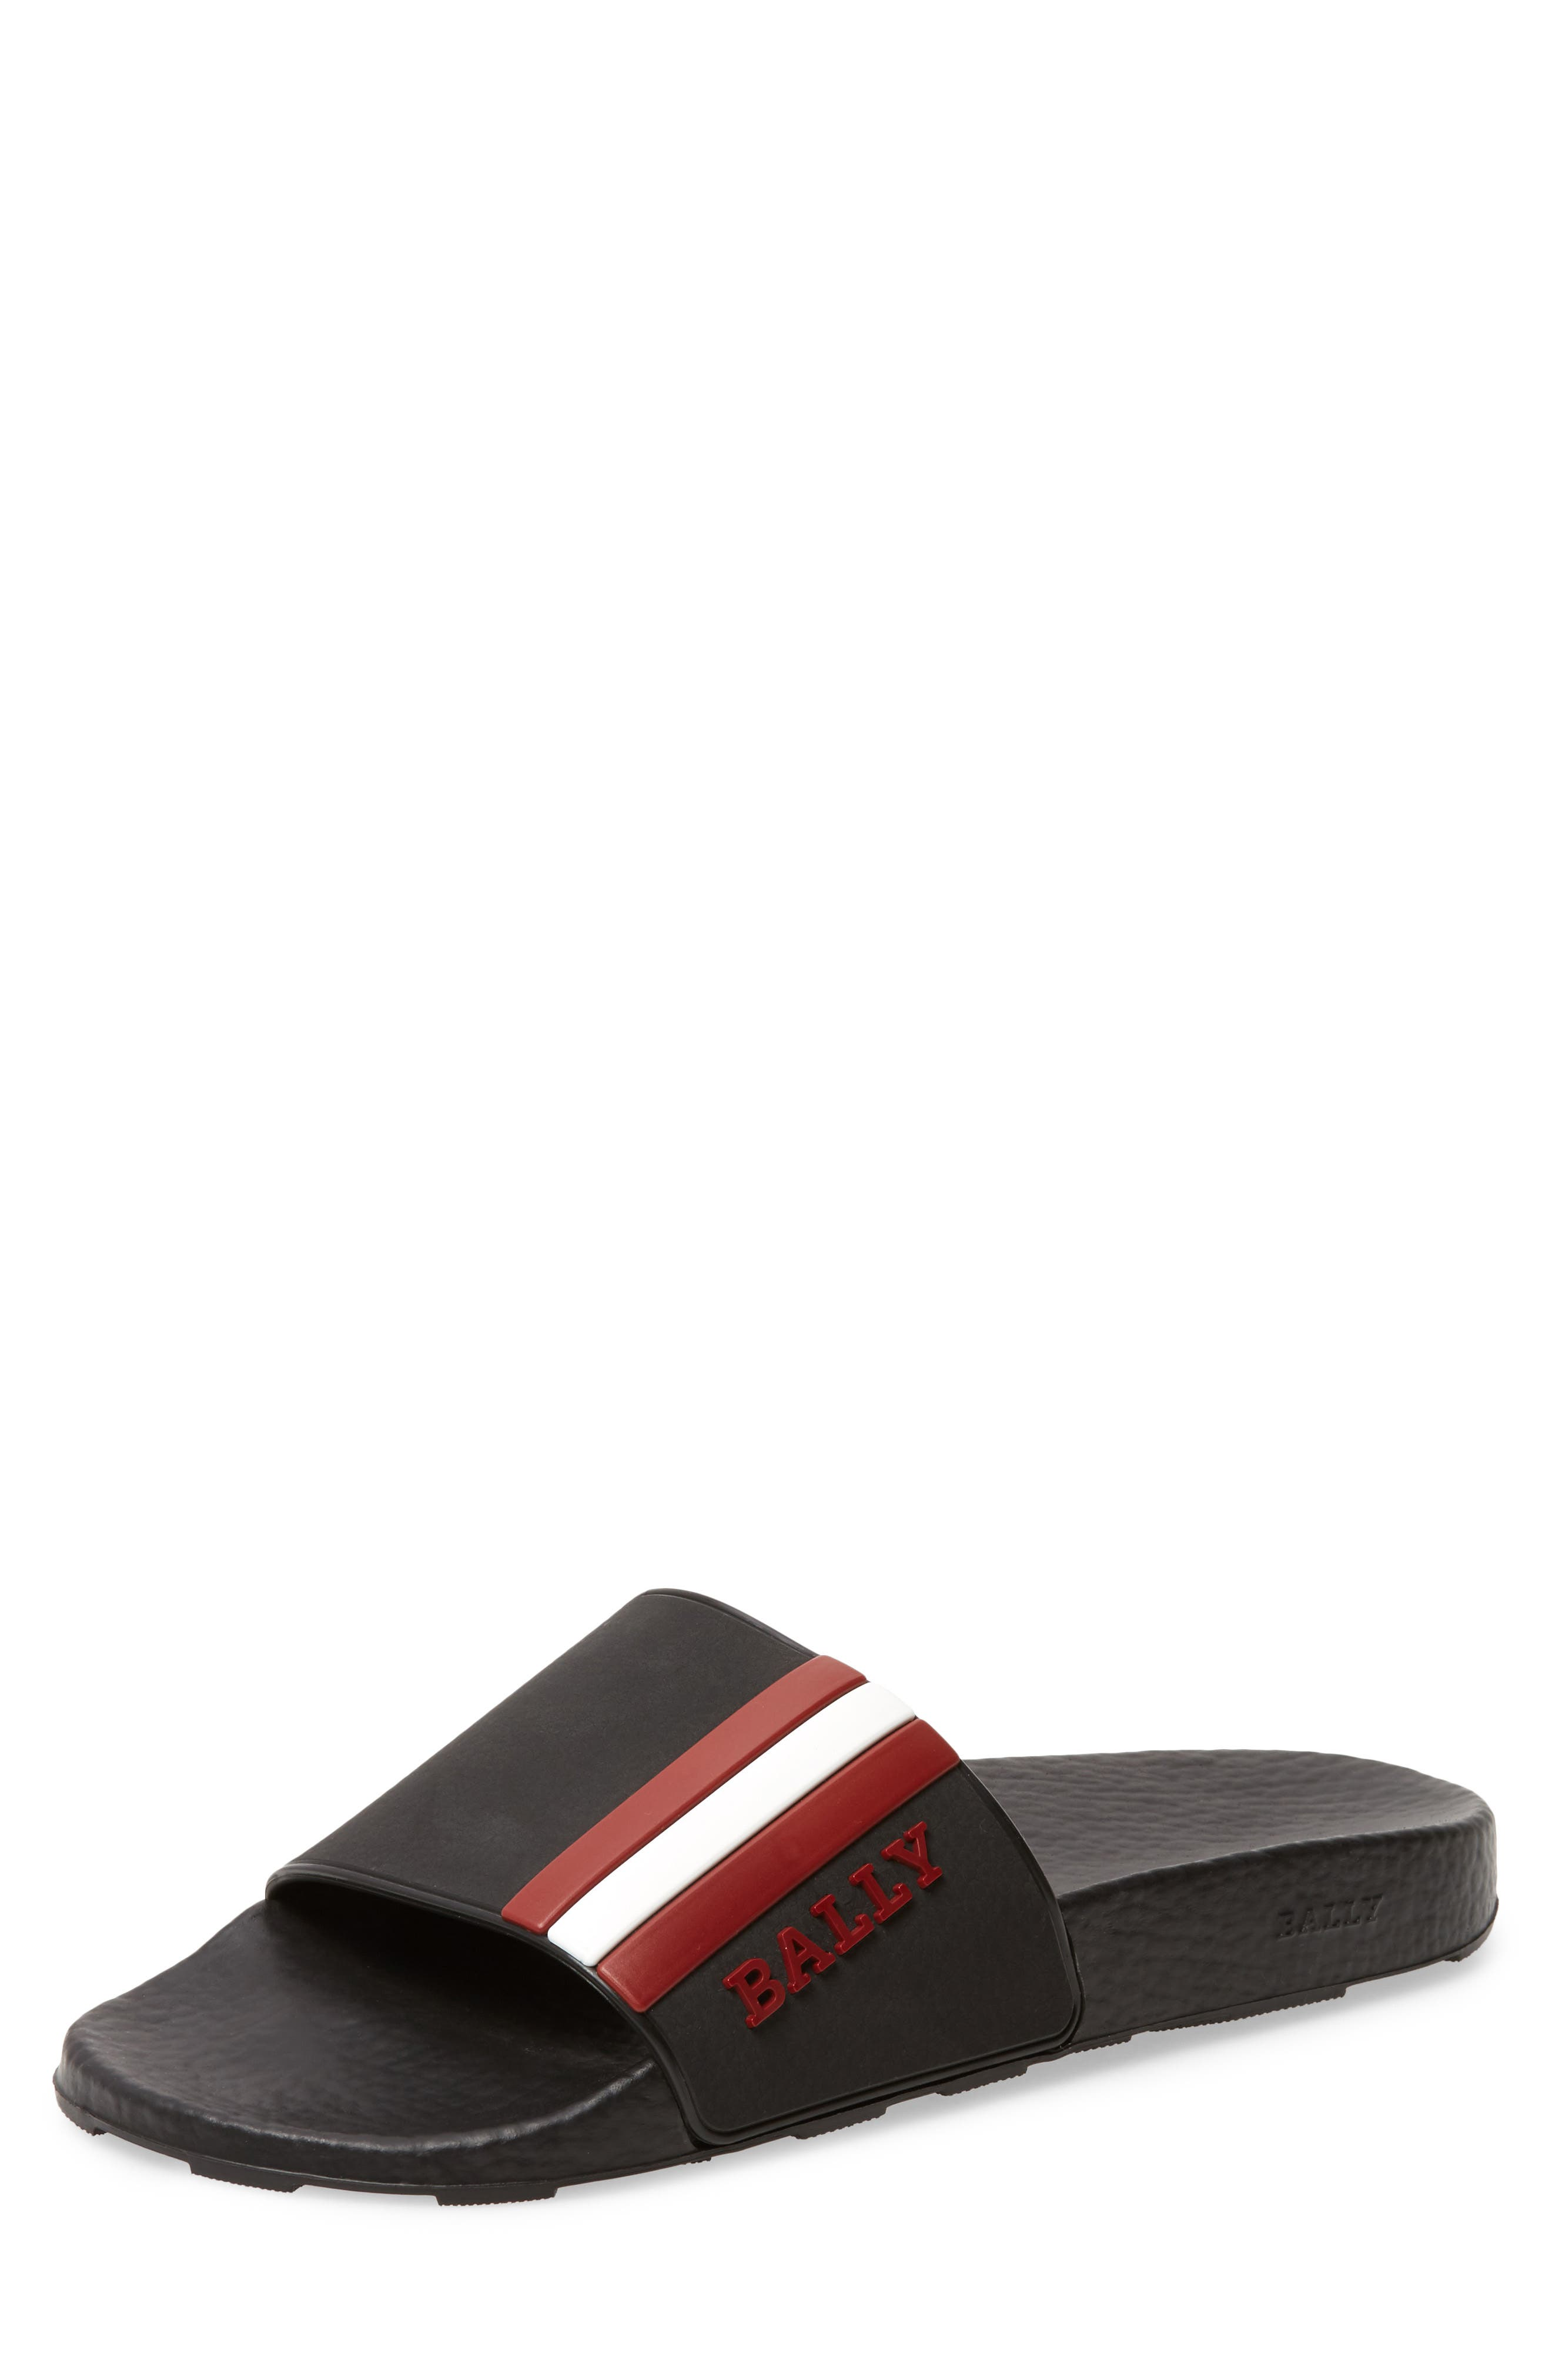 Saxor Slide Sandal,                         Main,                         color, 798